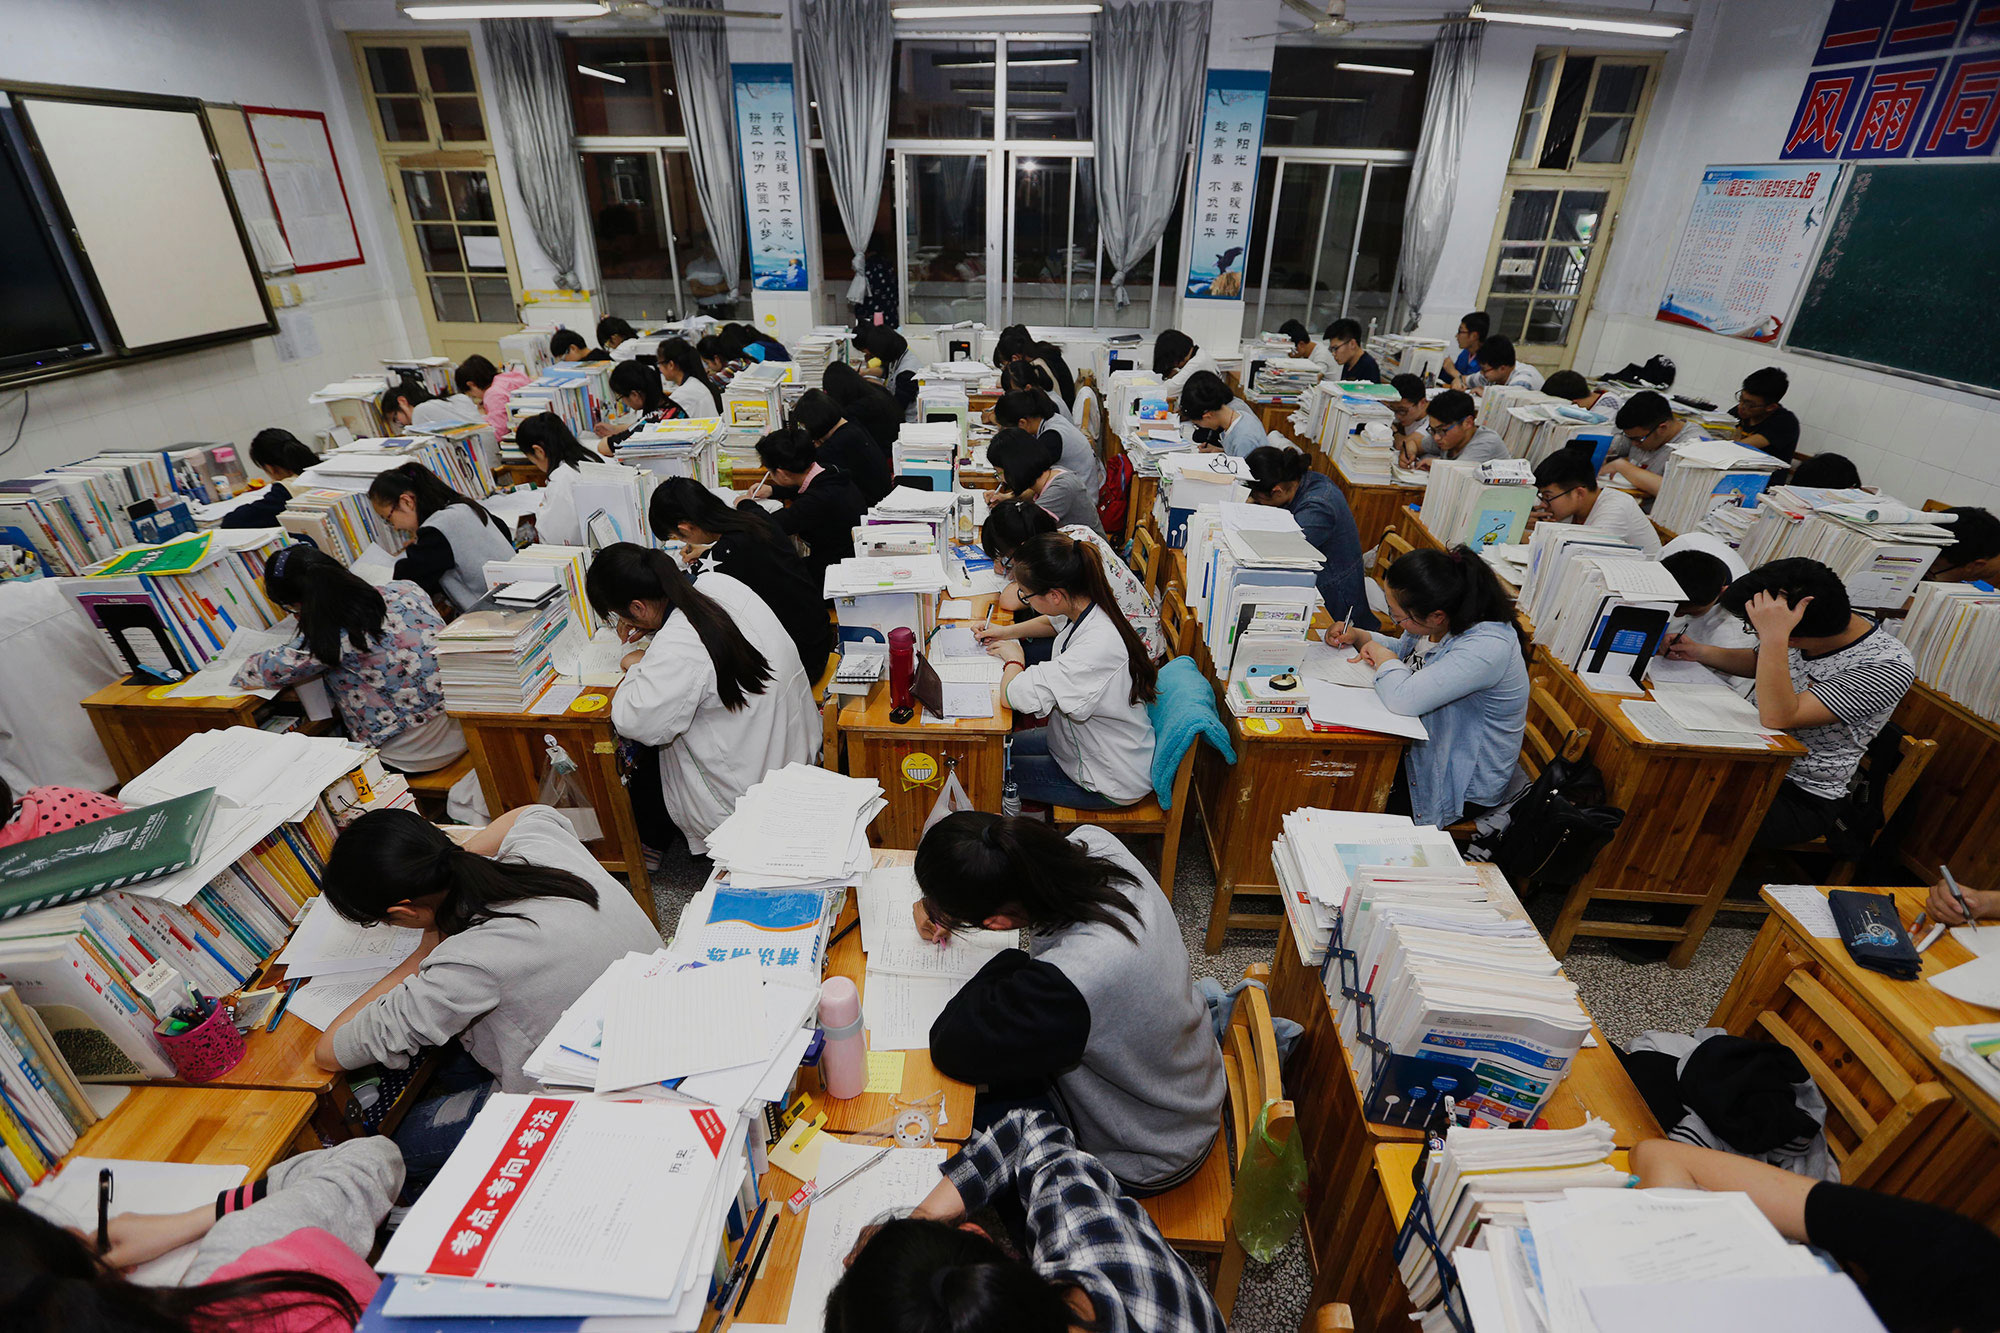 How Does Education In China Compare With Other Countries